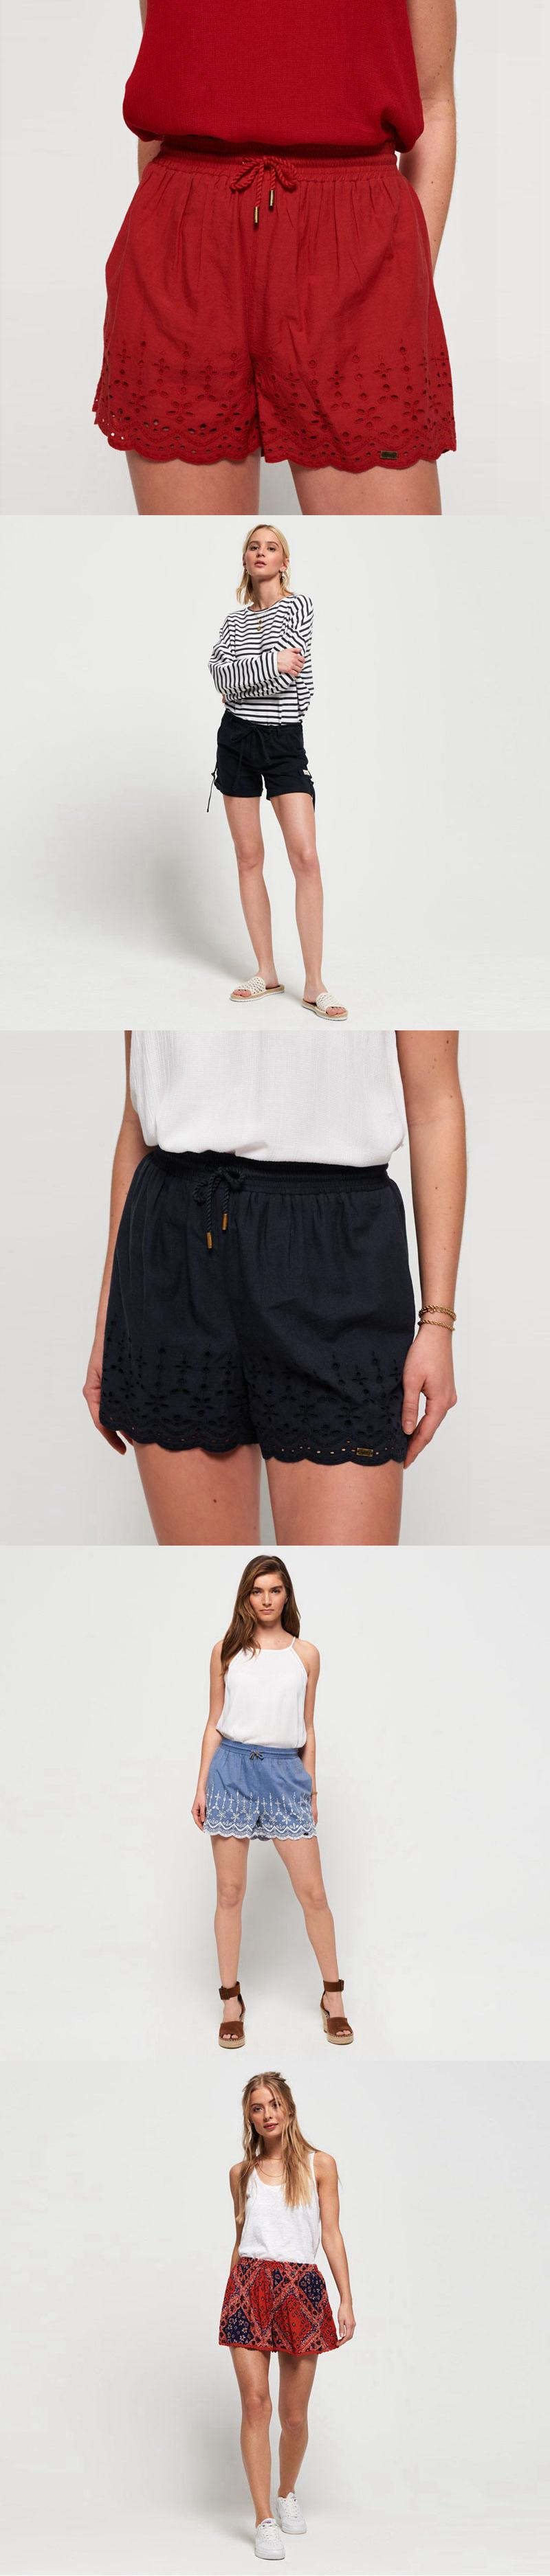 Girl clothing gay short shorts flower